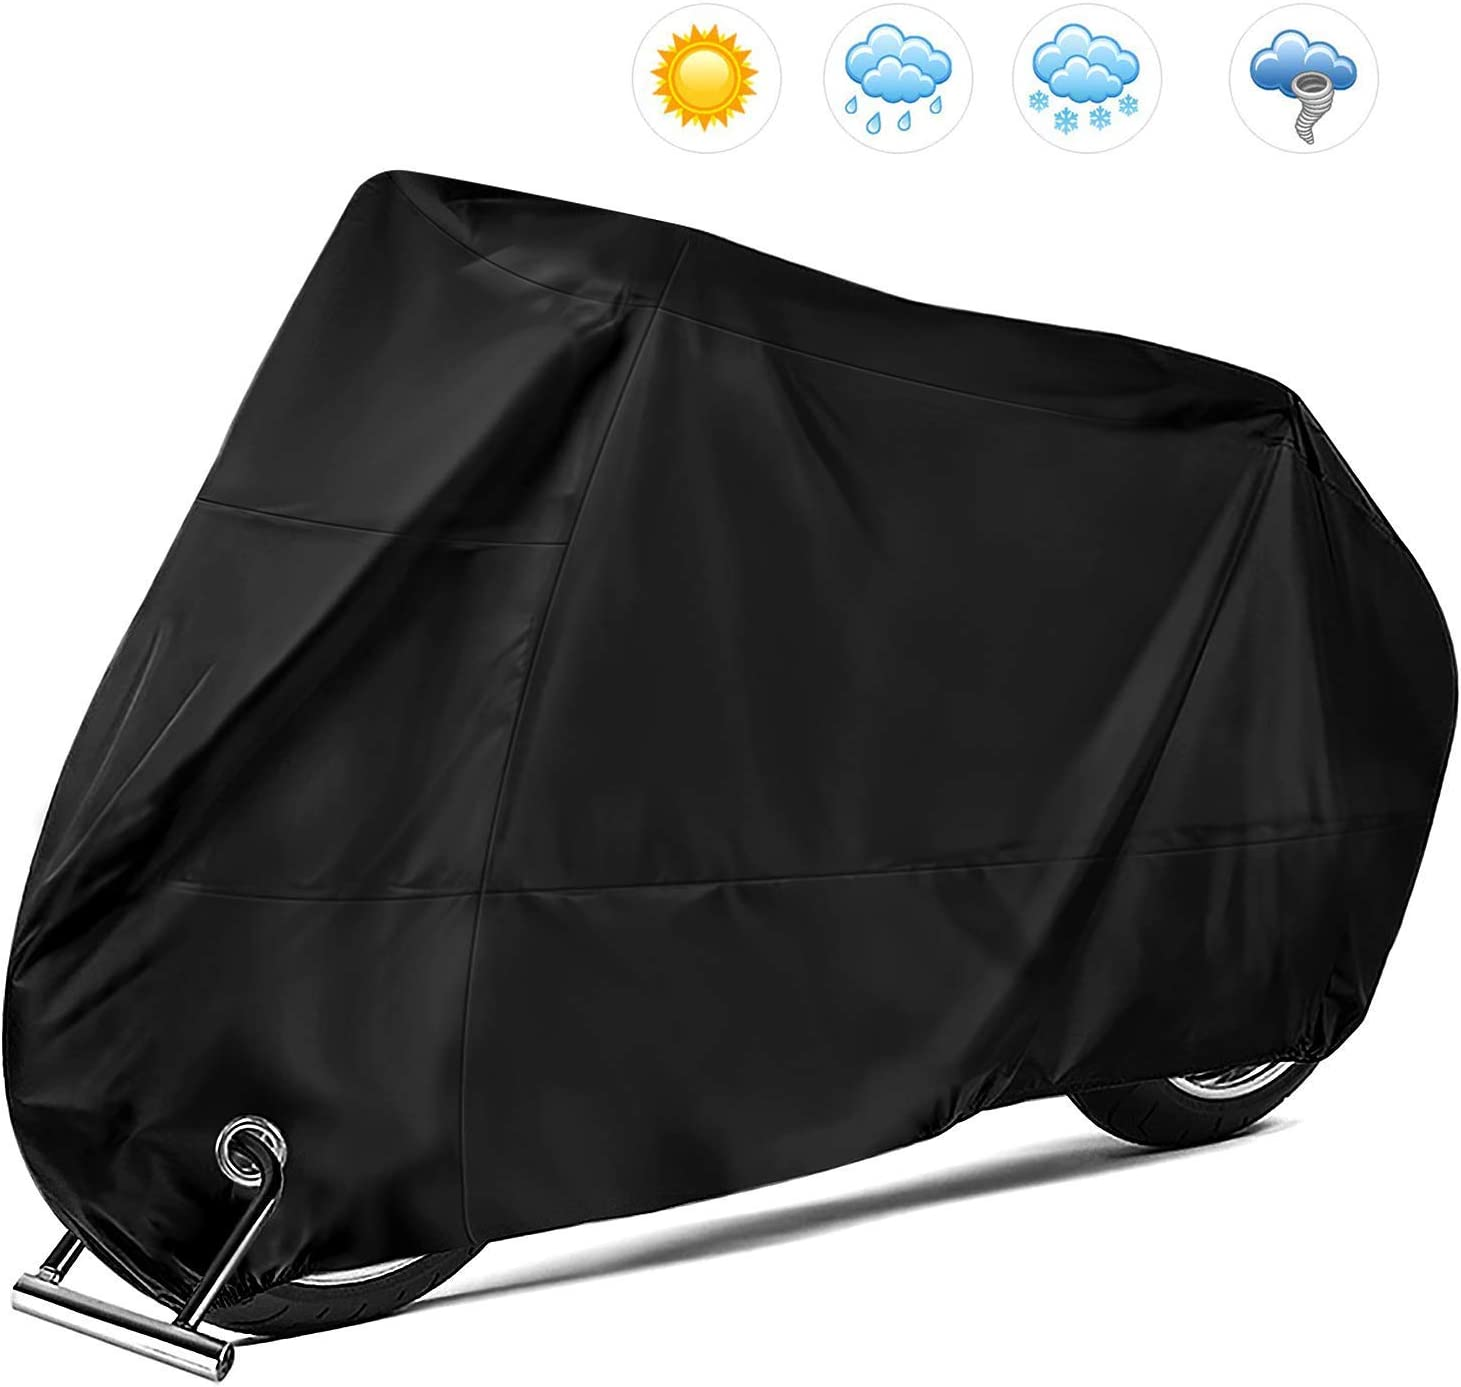 KOKOMALL Motorcycle Cover Waterproof Outdoor 210D All Weather Protection Anti-UV Dust-proof Heavy Duty with Lock Holes Motorbike Covers Black XXXL